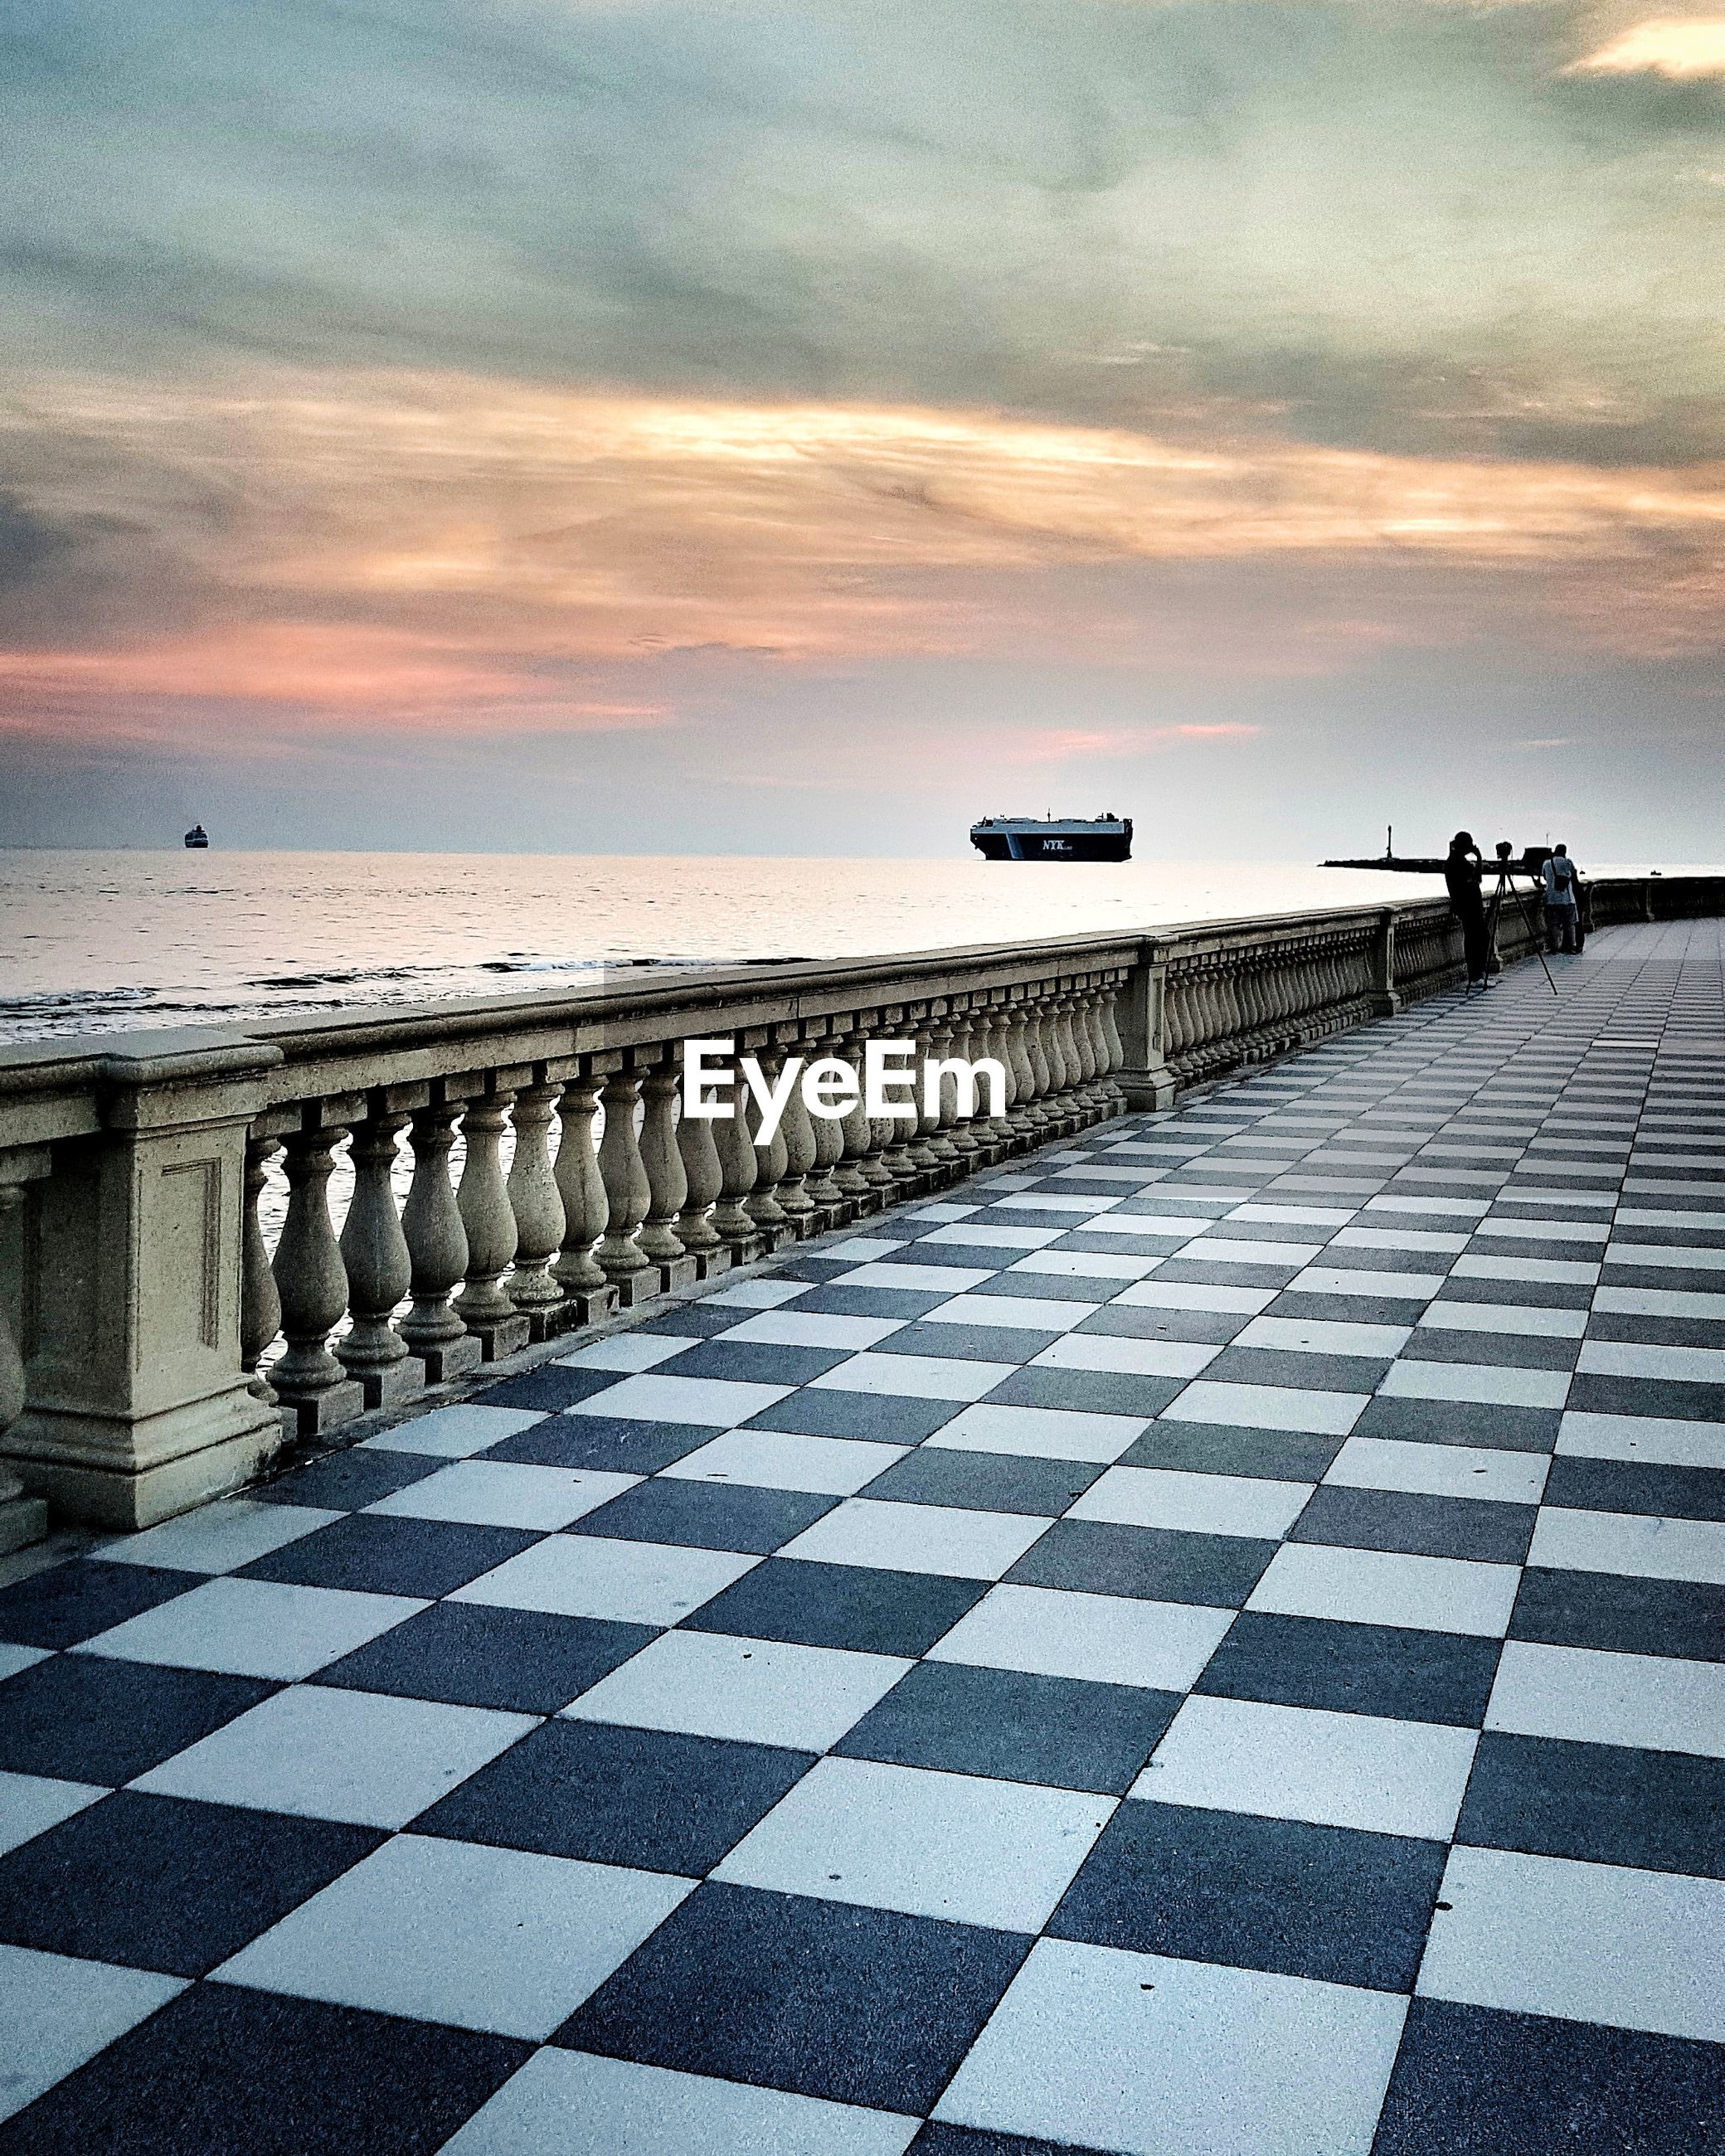 Sea seen from tiled floor against sky during sunset